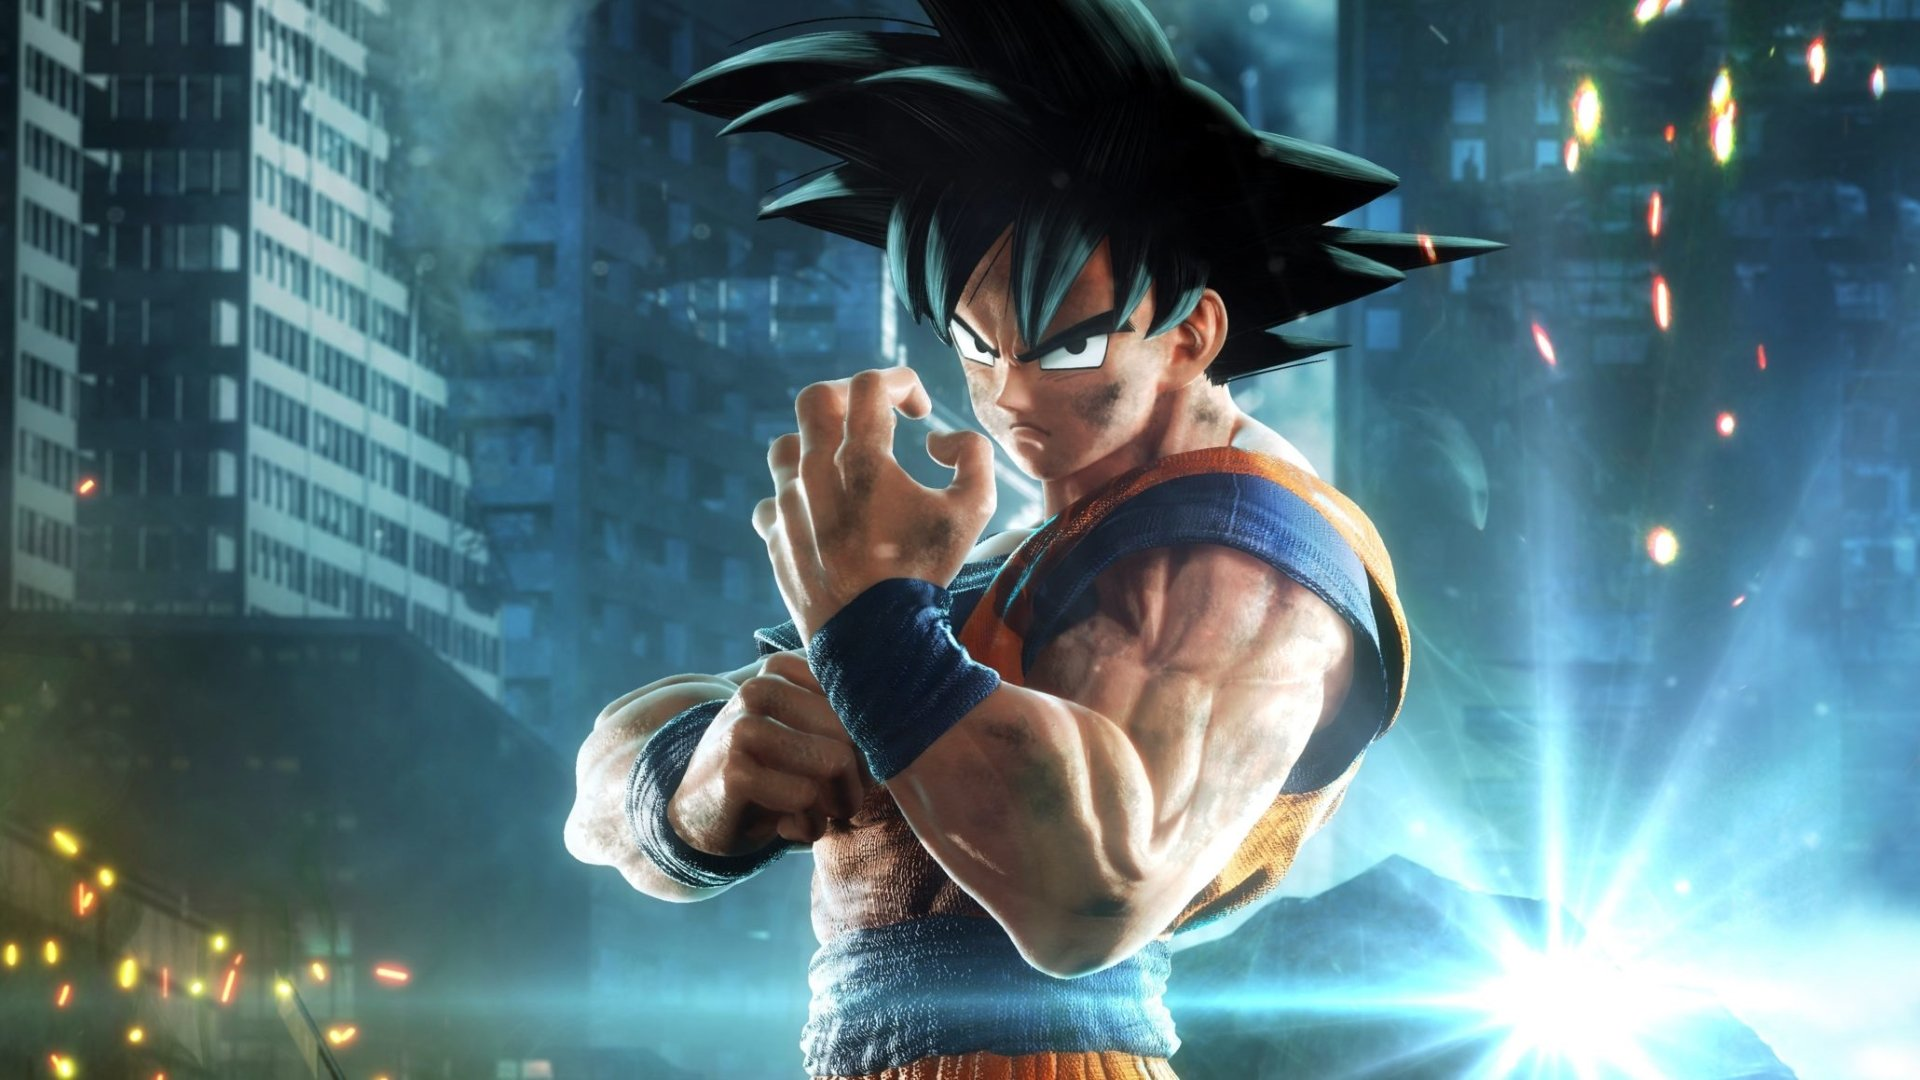 Goku prepares for a fight - Jump Force Confirmed Character Roster